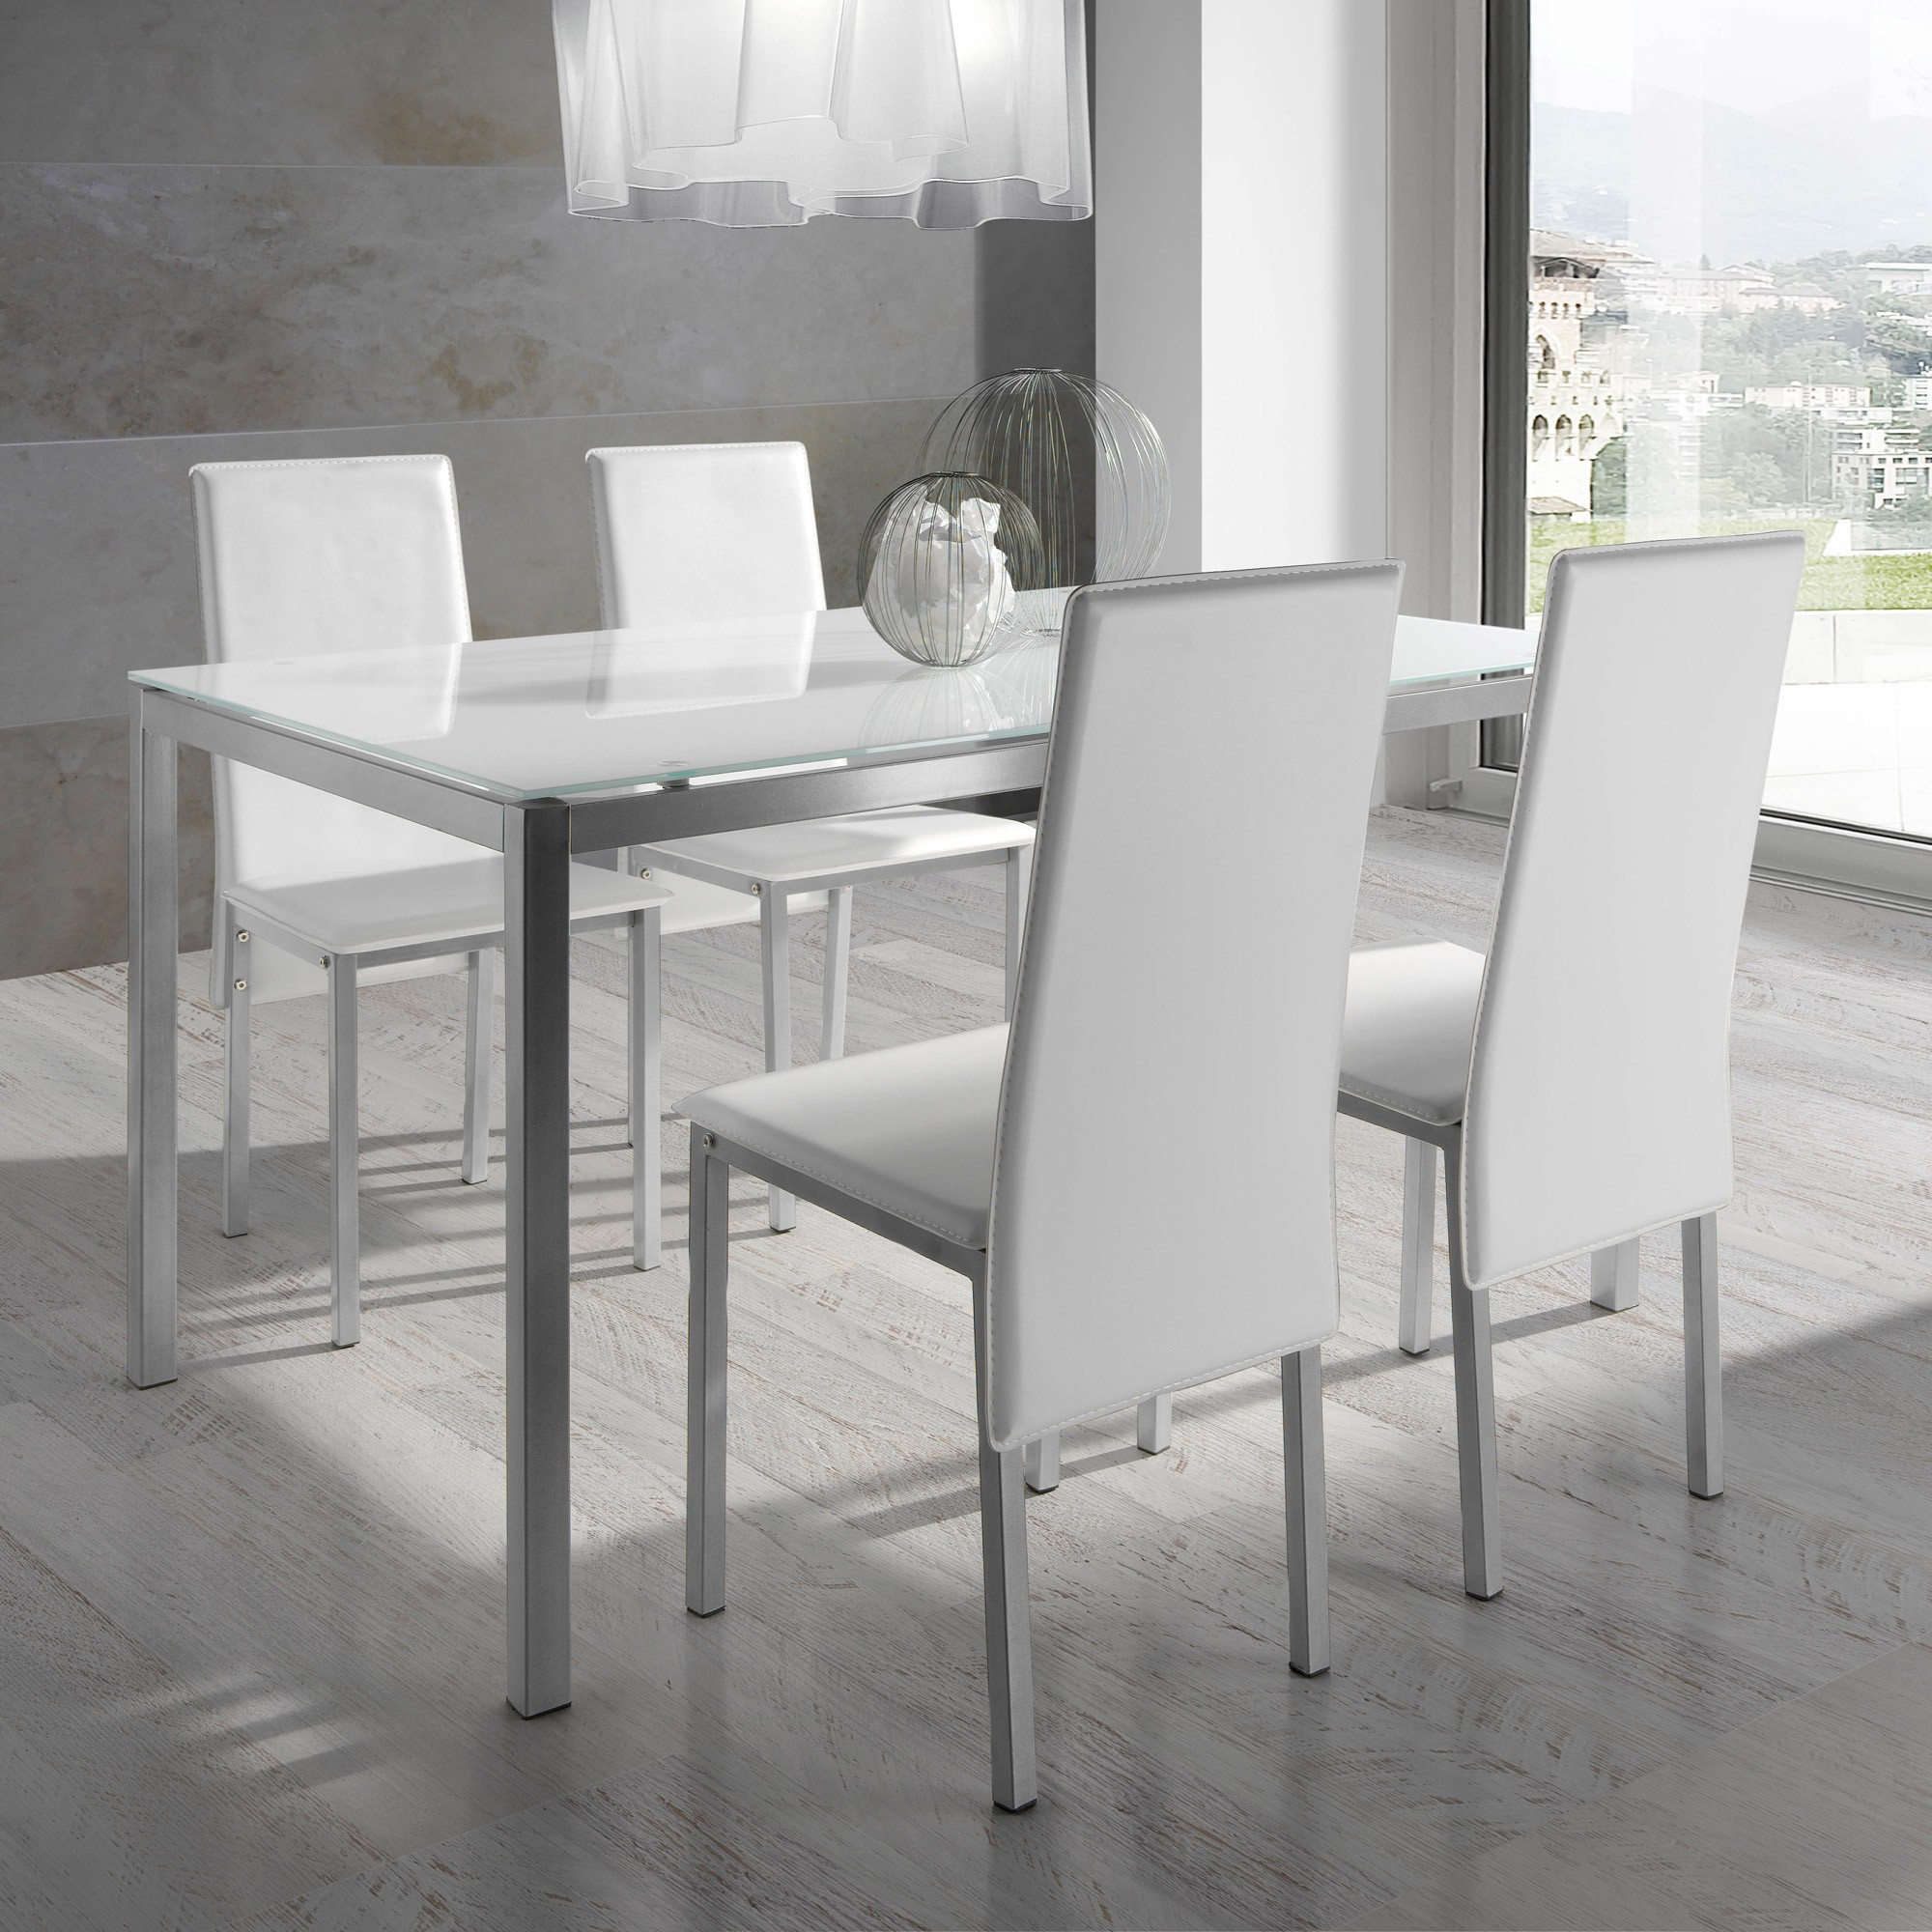 Ensemble table et chaise salle a manger but chaise - Ensemble table a manger ...